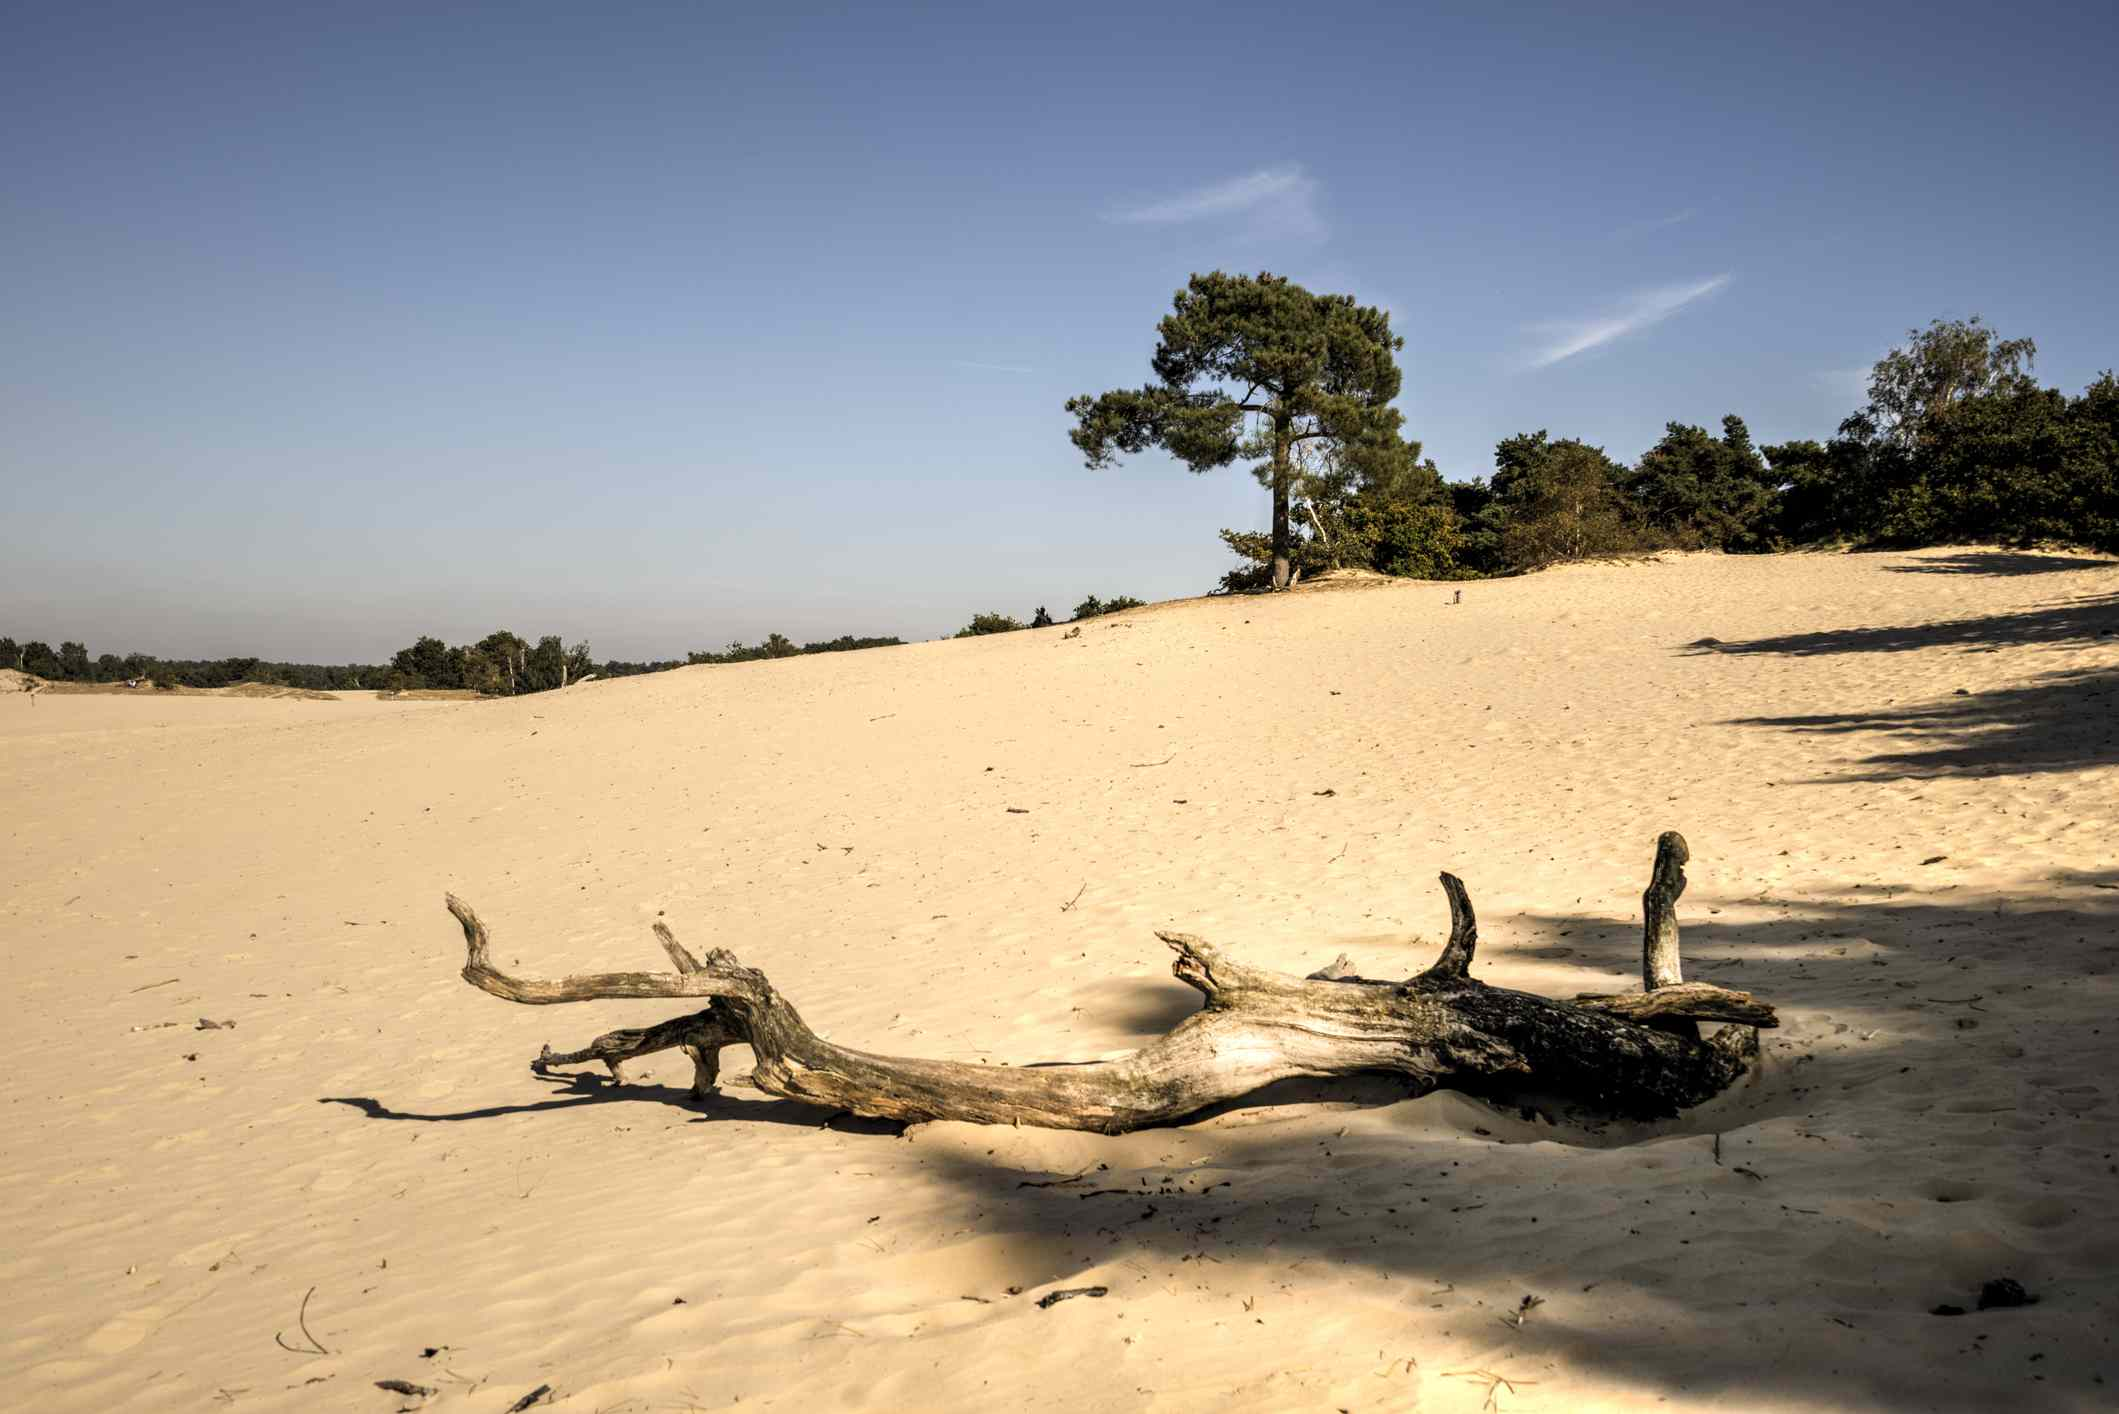 Sand dune with a tree branch in the Netherlands. there are trees in the backgound